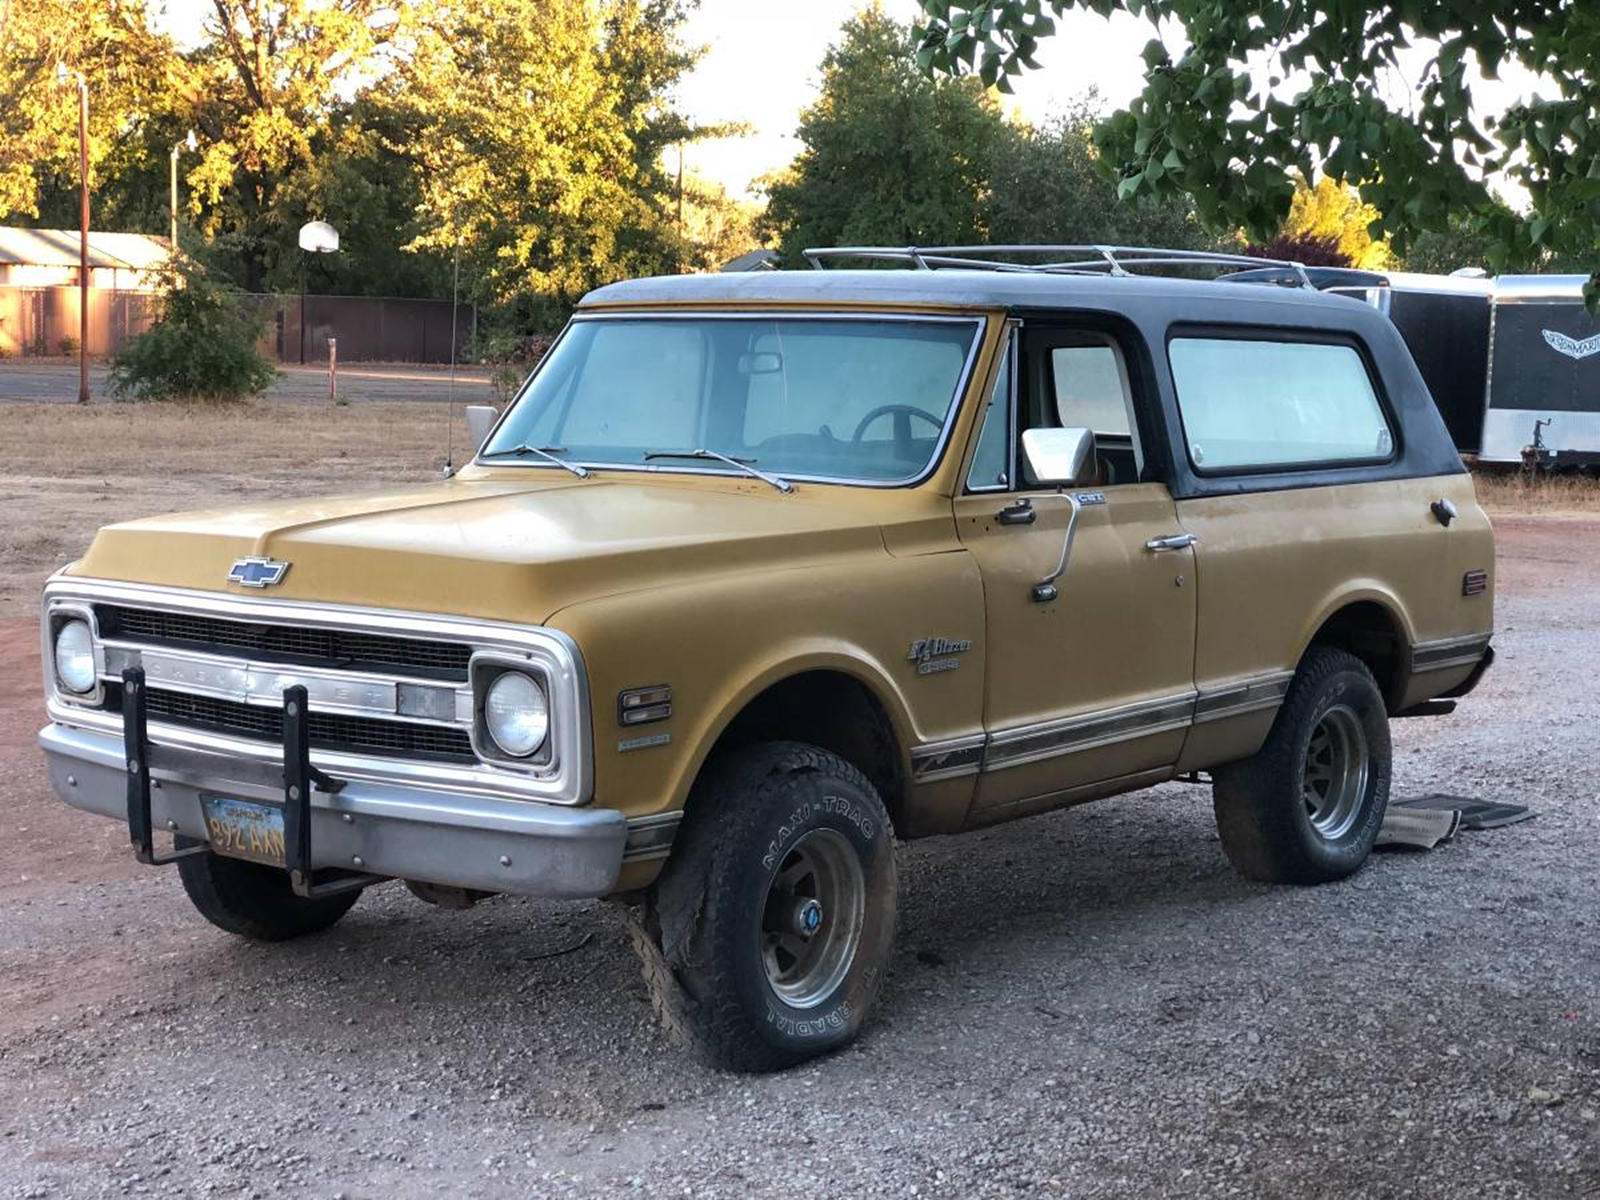 72 K5 Blazer For Sale Craigslist >> Weekly Craigslist Hidden Treasure 1970 Chevrolet Cst Blazer 4x4